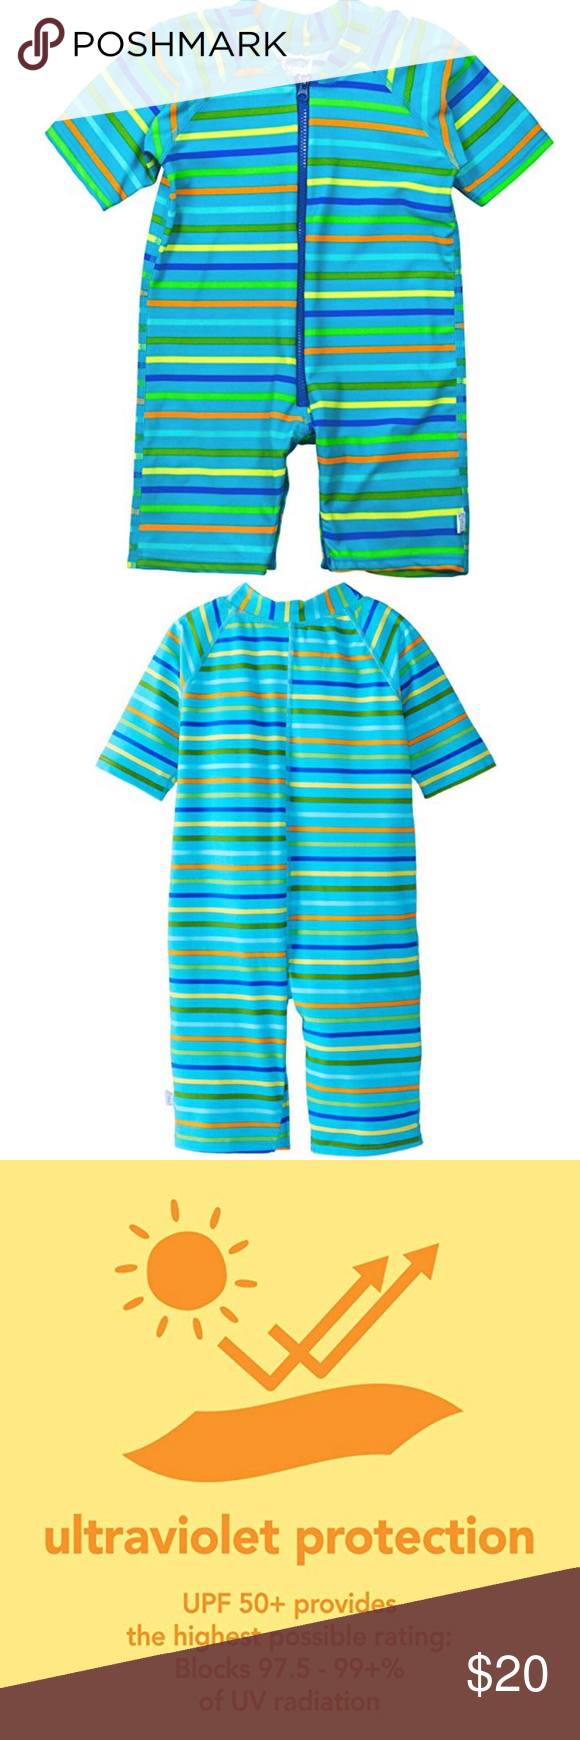 d8159ff3 Like New iPlay Baby Onepiece Swimsuit 12 month The Swim Sunsuit provides  all-day,